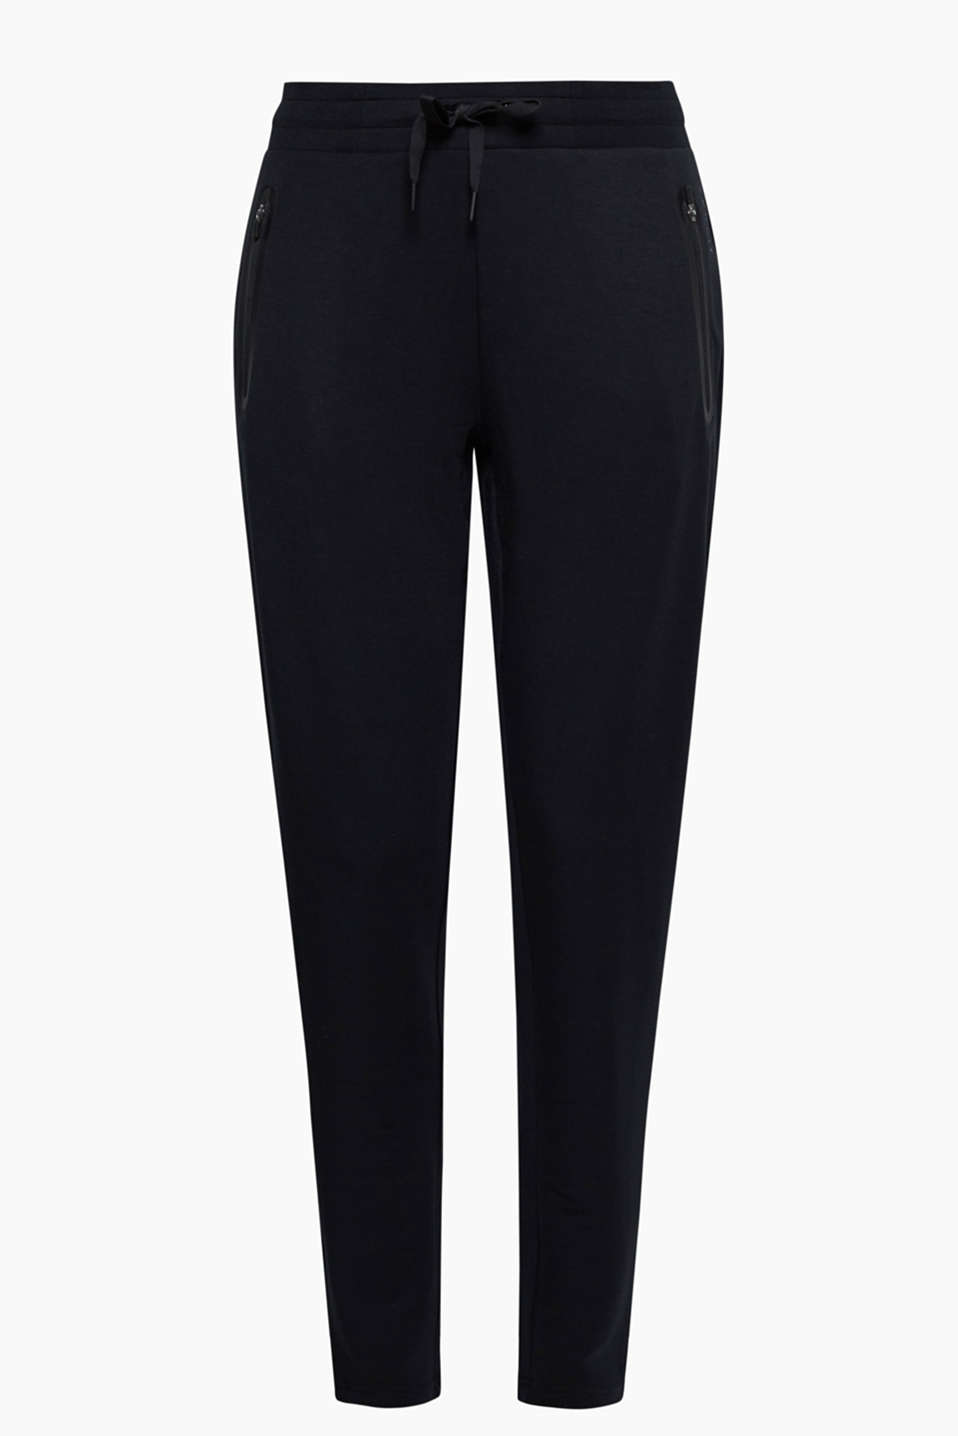 These comfortable jersey bottoms with zip pockets are your leisure piece for all occasions - whether for sport or relaxing!